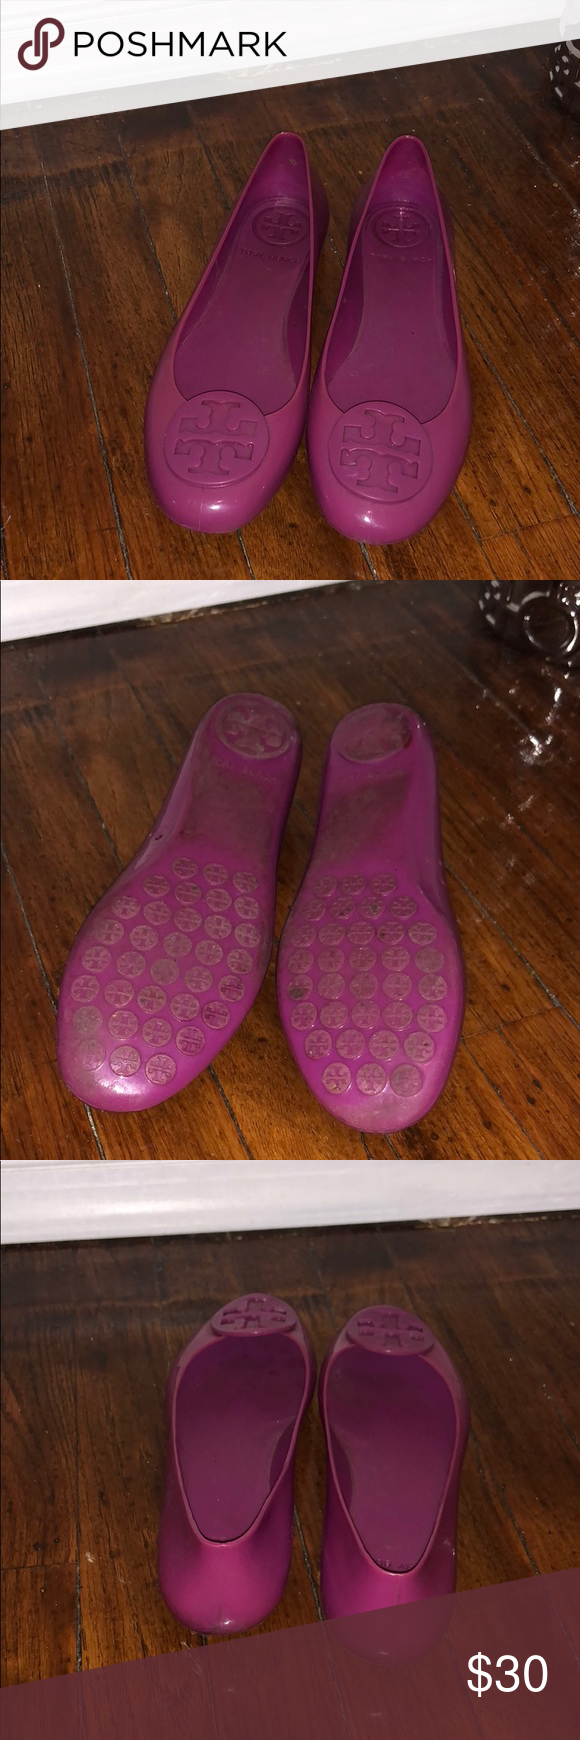 a1c89d246f99 I just added this listing on Poshmark  Flat magenta Jellies.  shopmycloset   poshmark  fashion  shopping  style  forsale  Tory Burch  Shoes